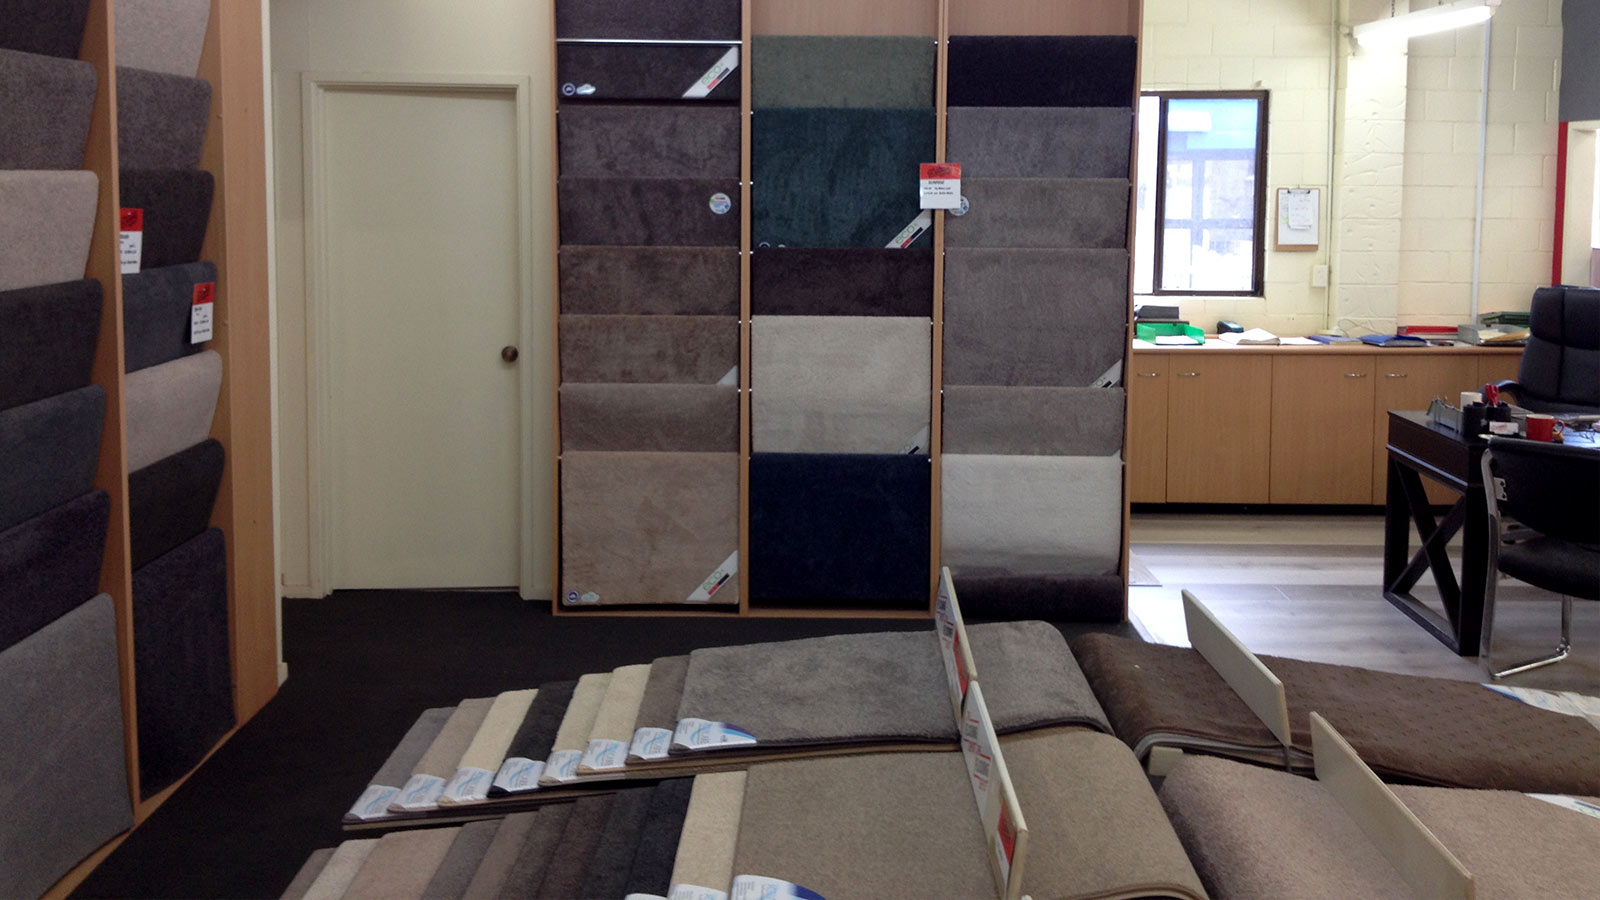 Our Flooring Product Range Inside our Gold Coast Store